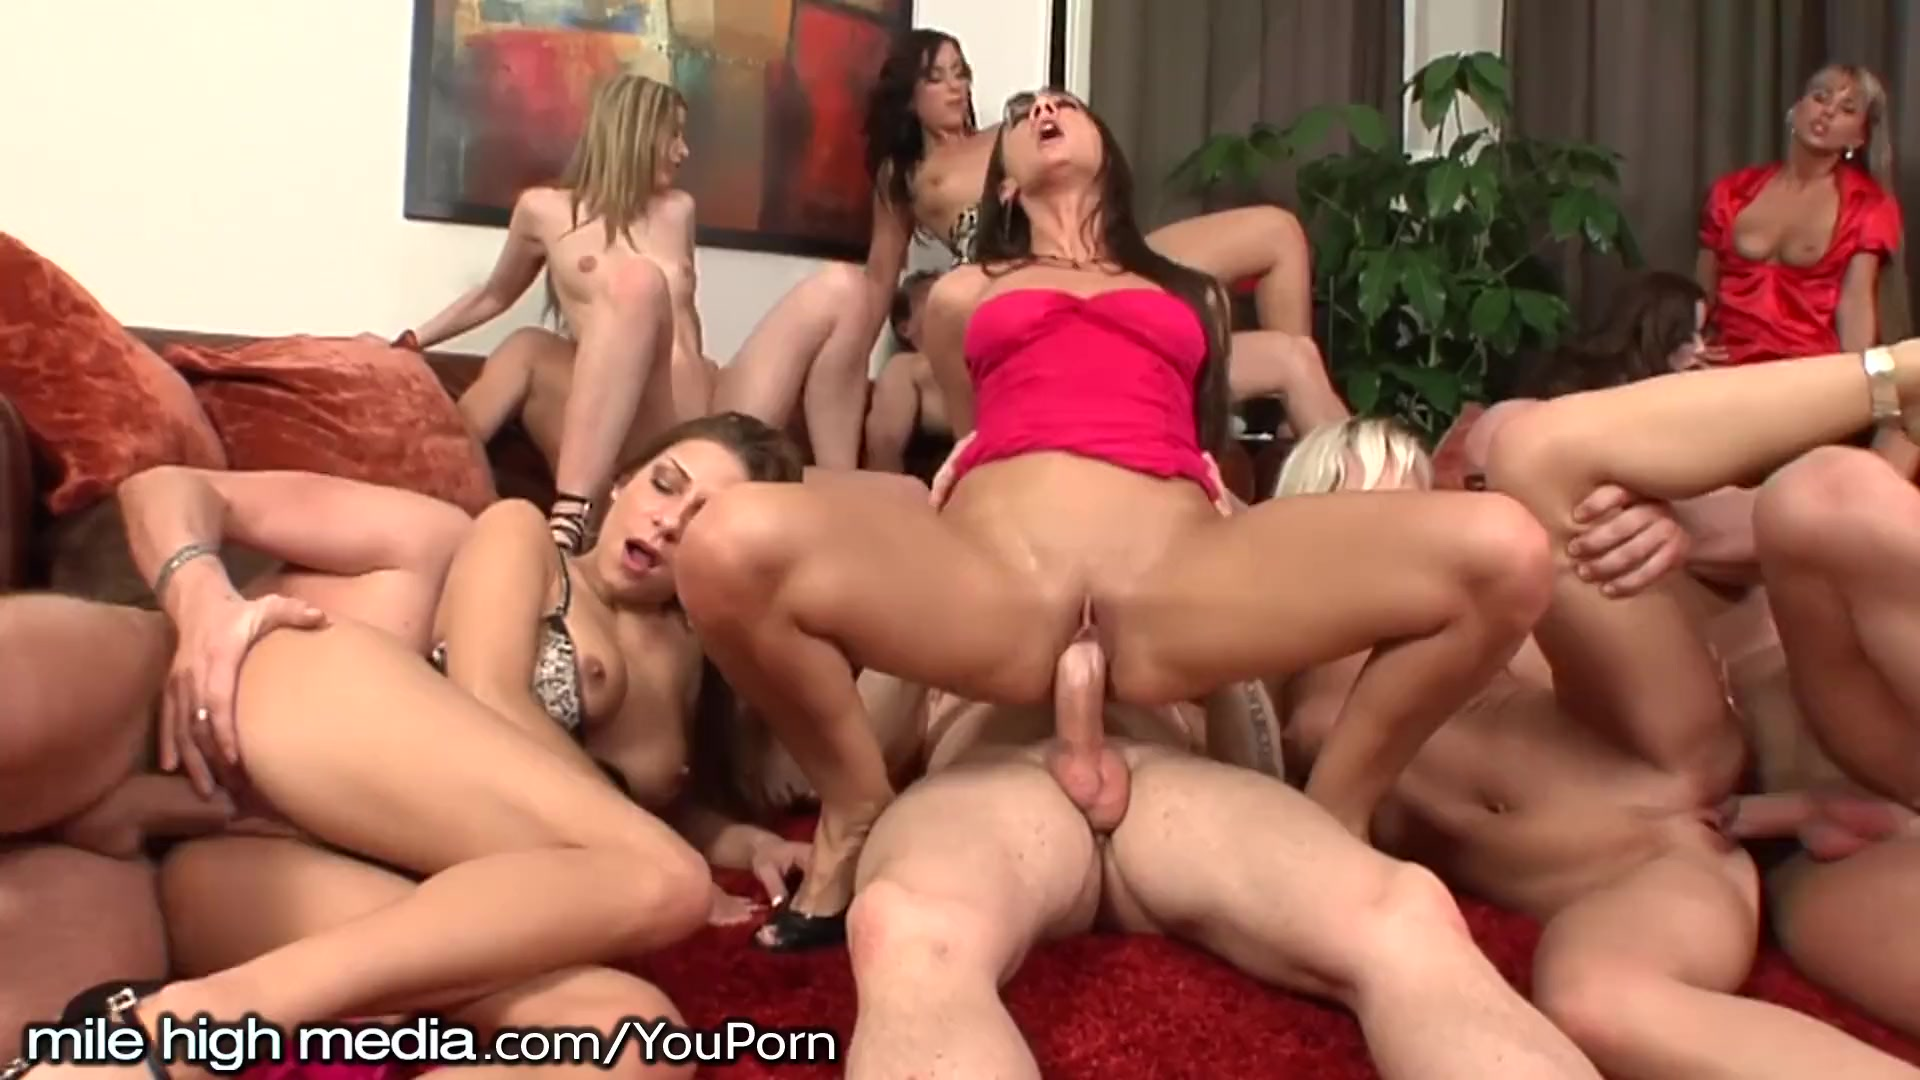 Fee video orgy